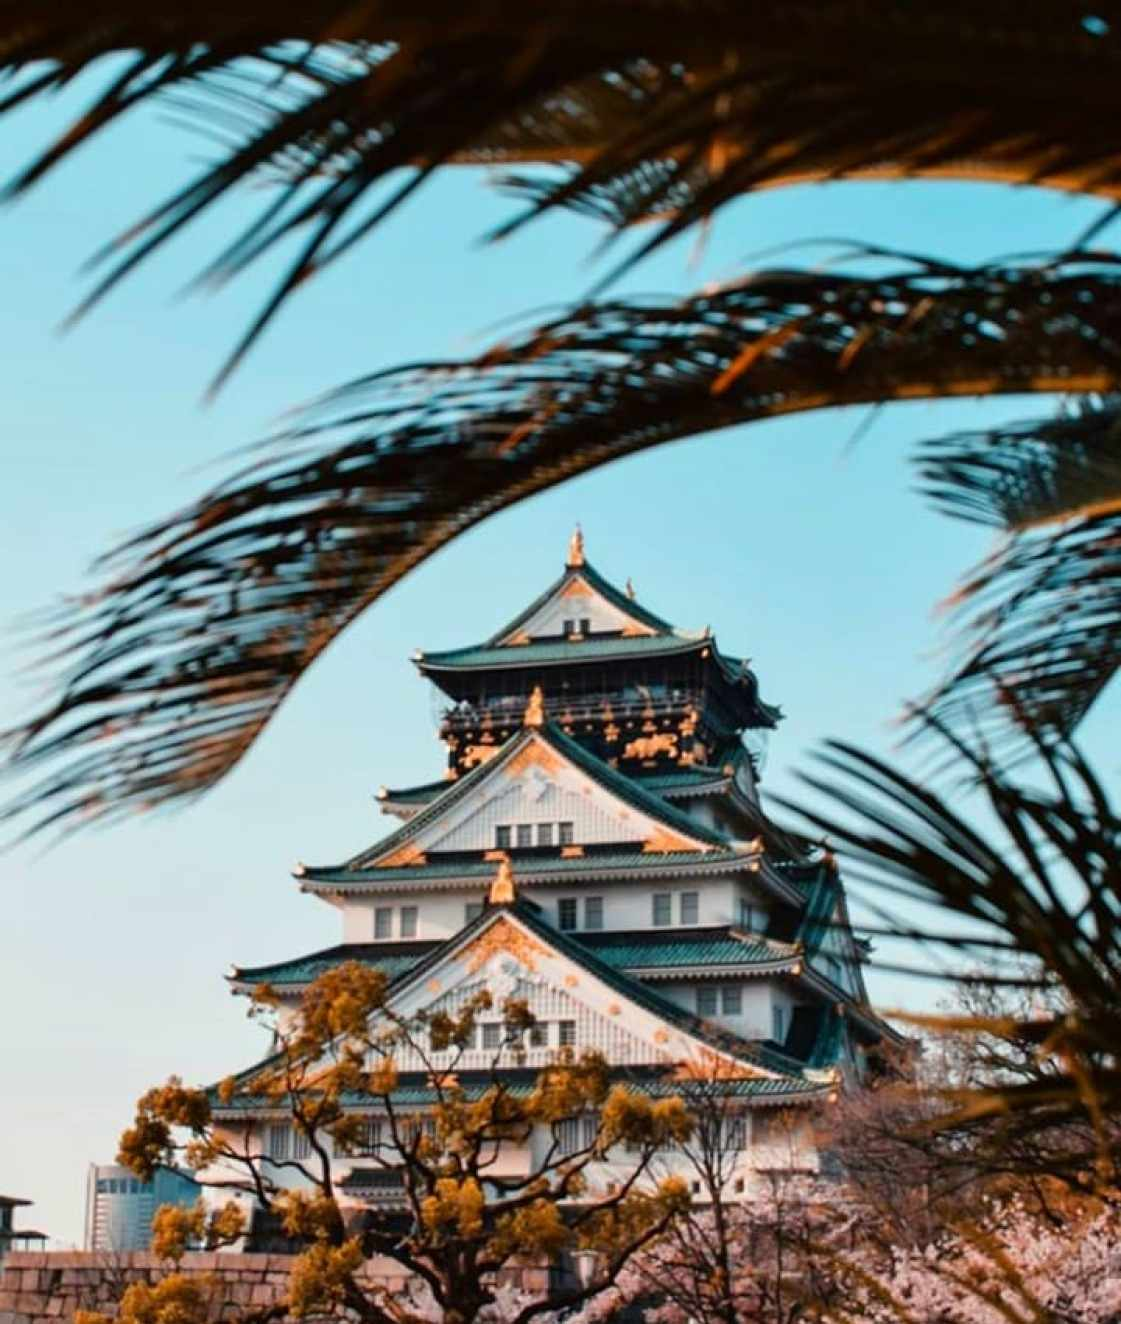 20 Things To Do In Japan For A Complete Experience